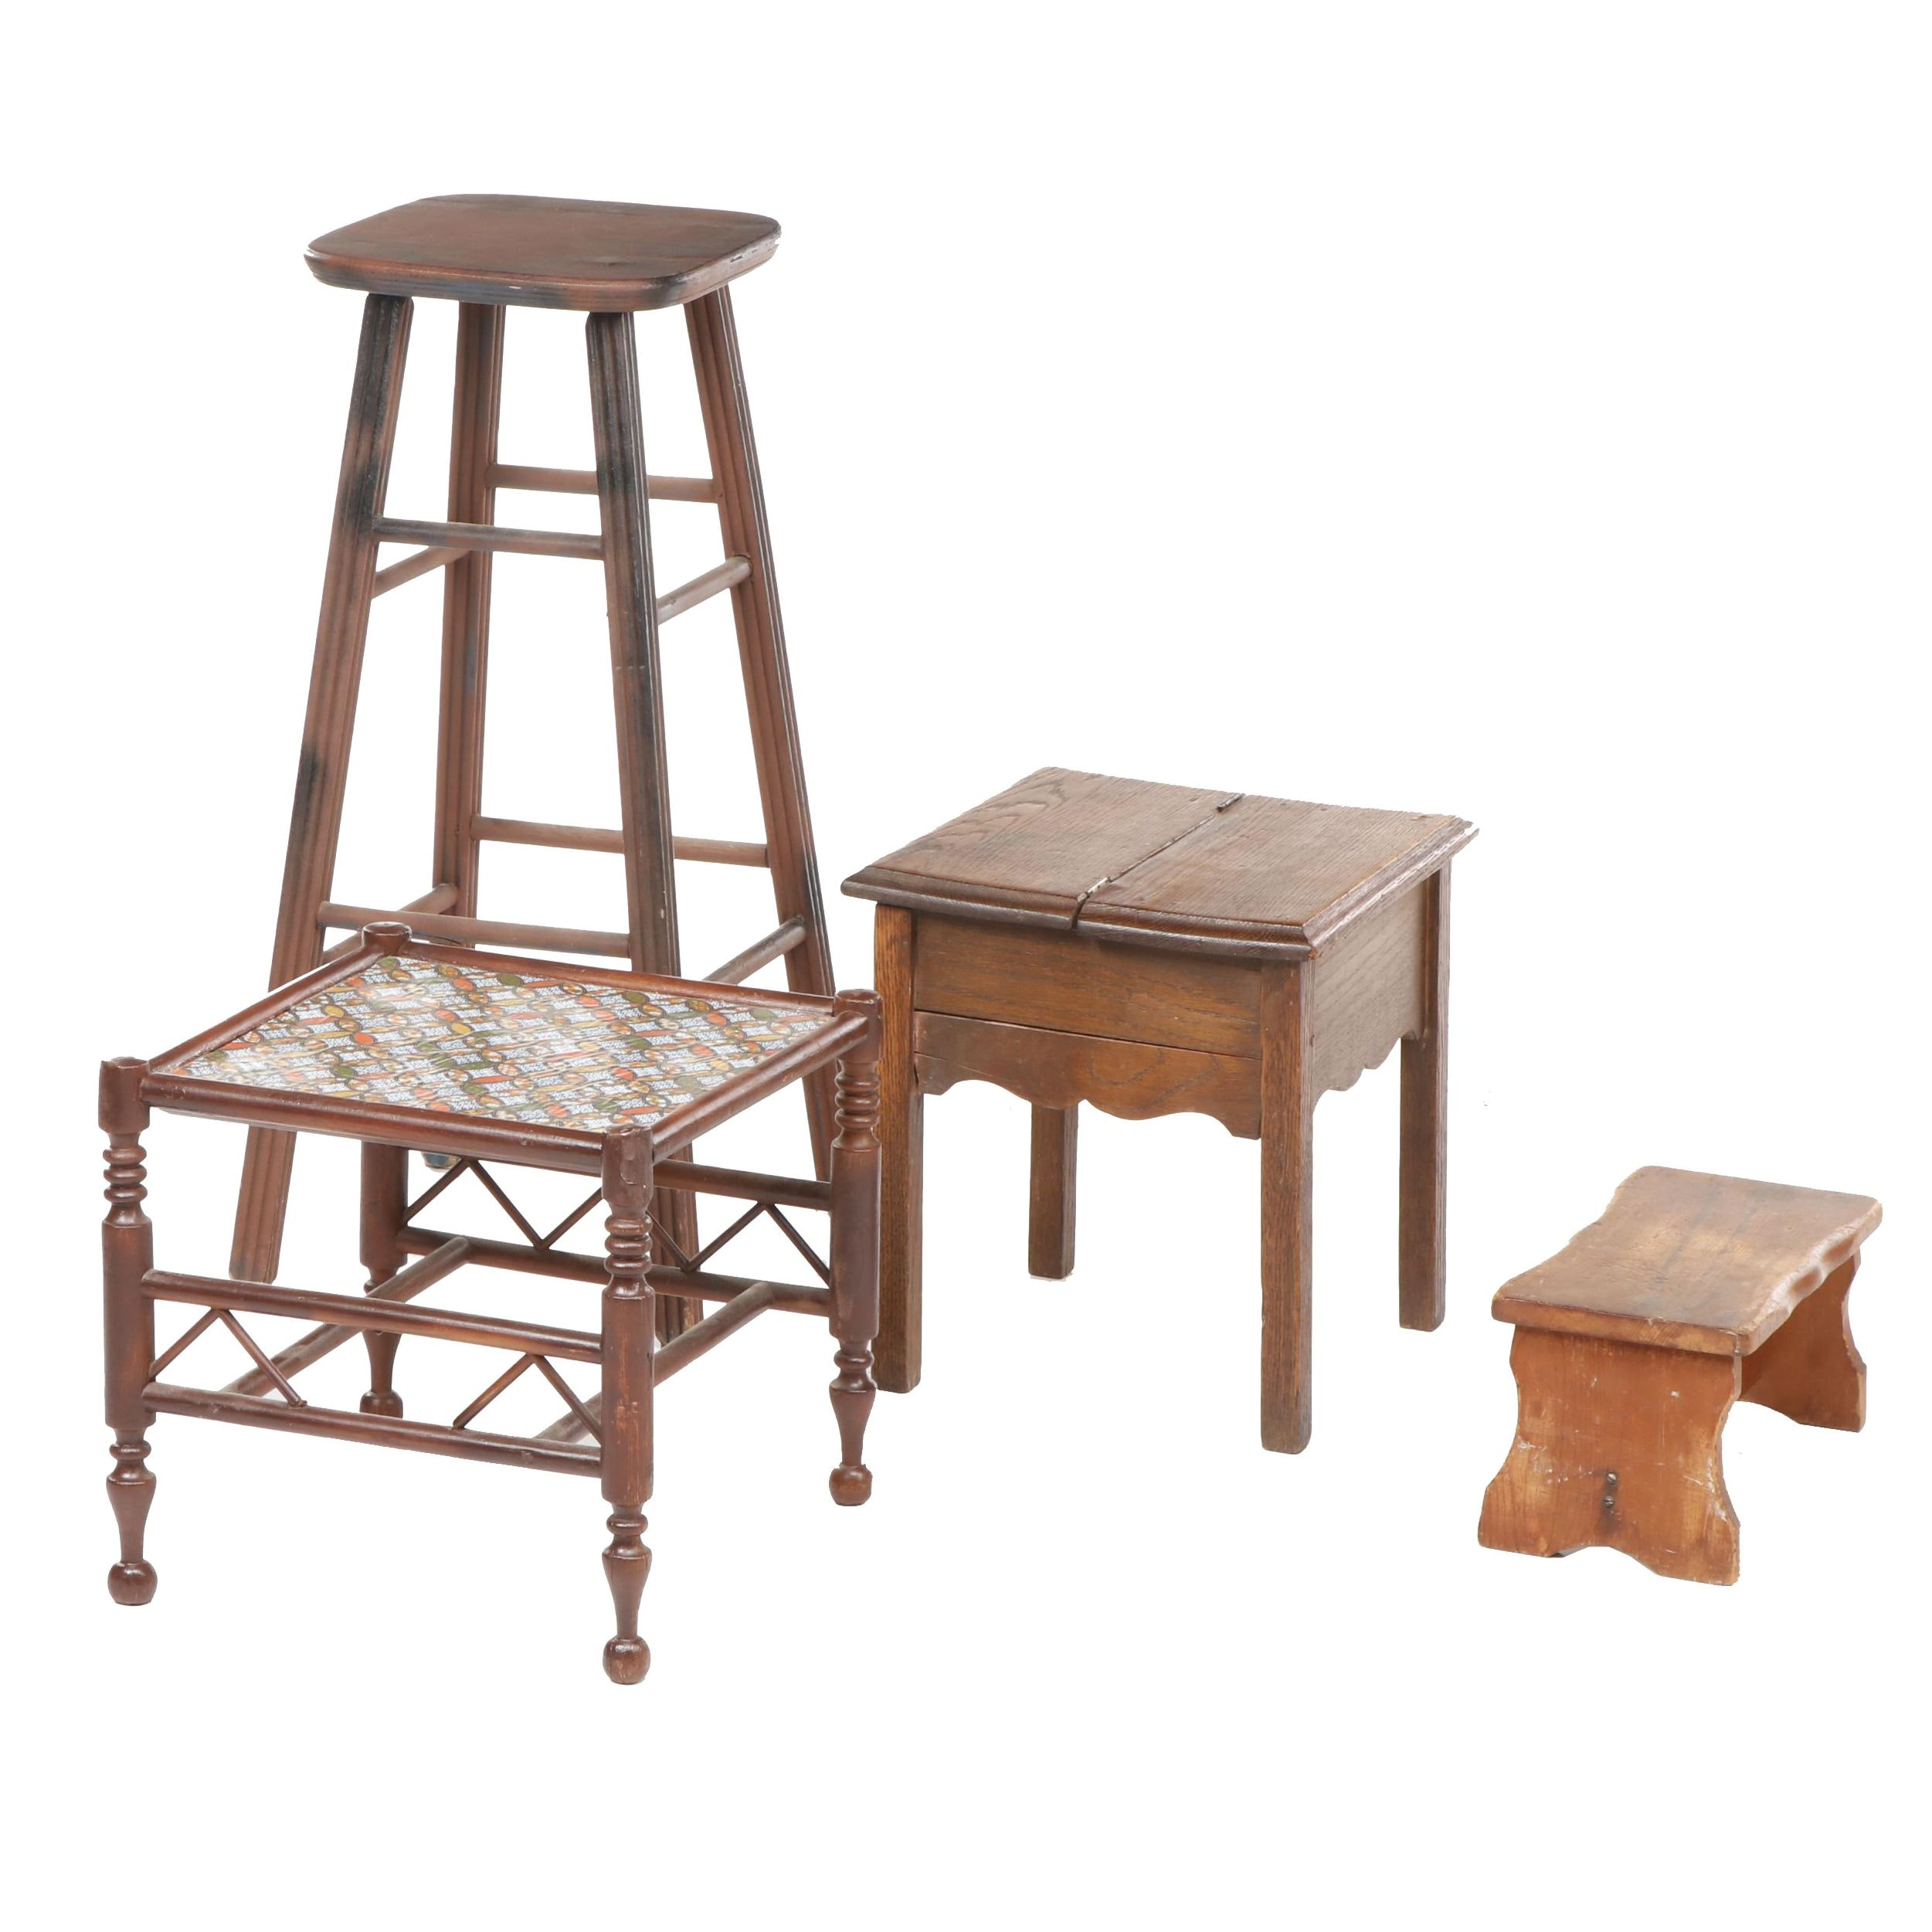 Four Wooden Stools, Including Barstool and Compartment Stool